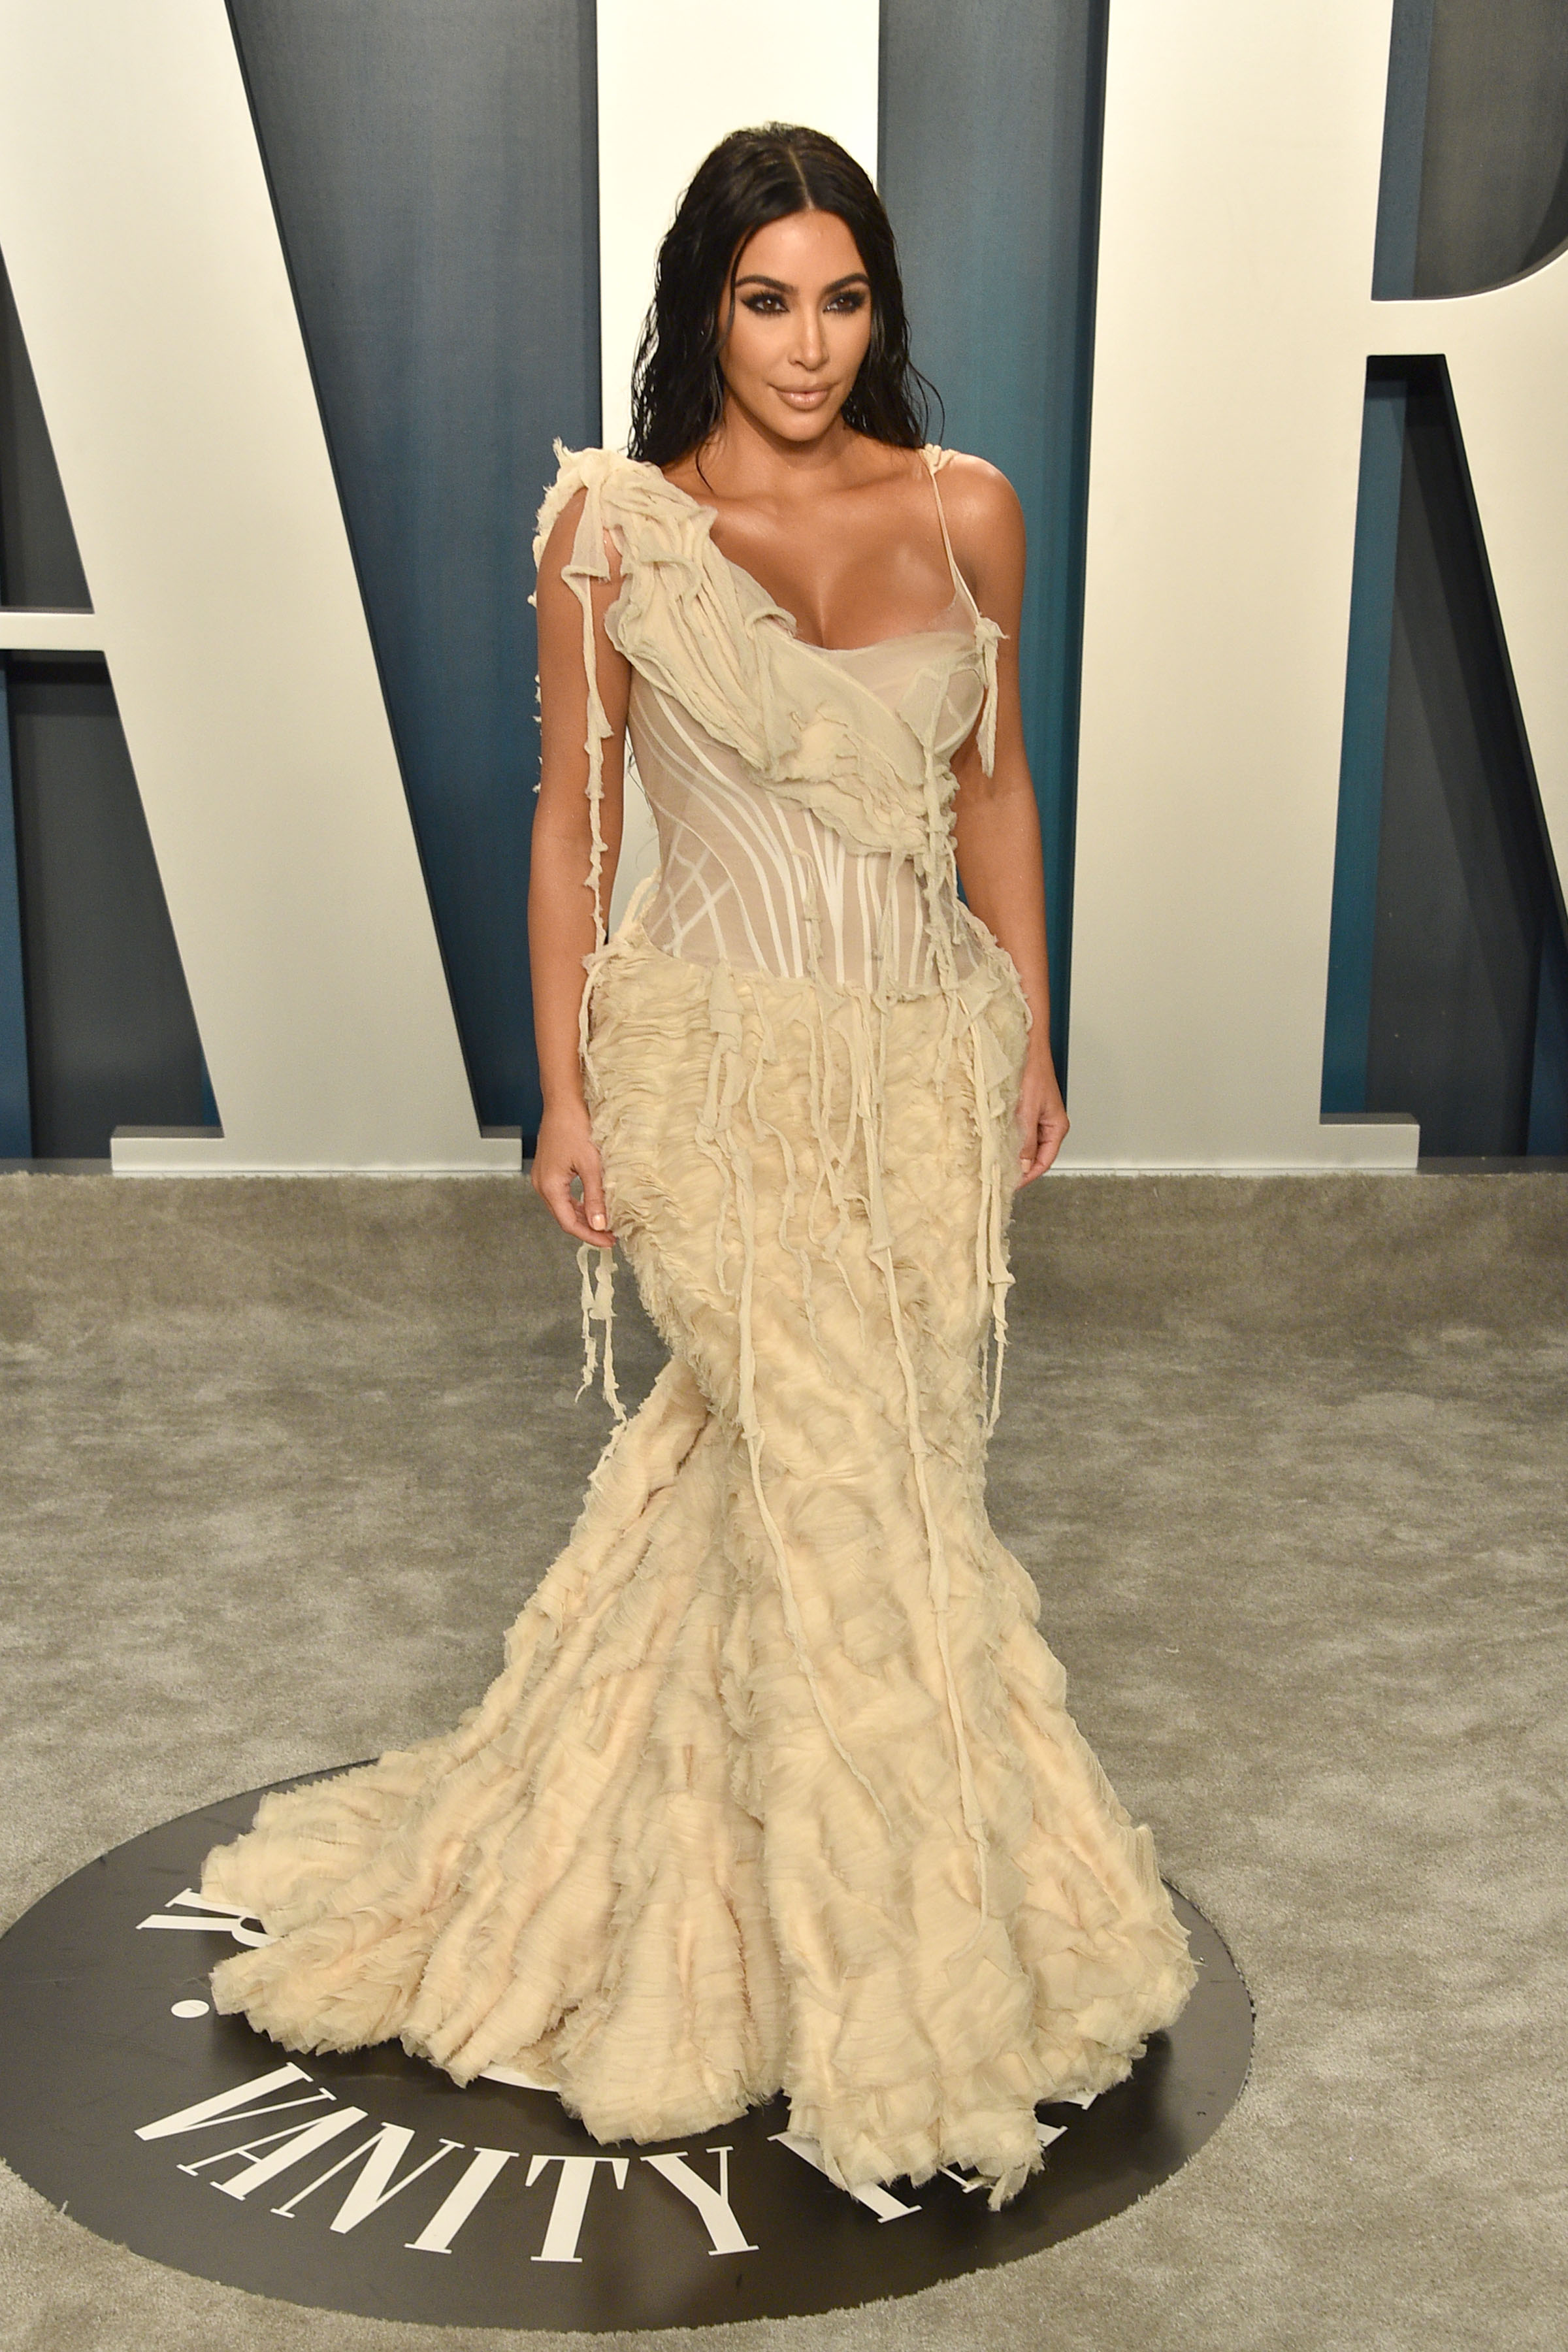 Kim Kardashian attends the 2020 Vanity Fair Oscar Party at Wallis Annenberg Center for the Performing Arts on February 09, 2020 in Beverly Hills, California. (Photo by David Crotty/Patrick McMullan via Getty Images)